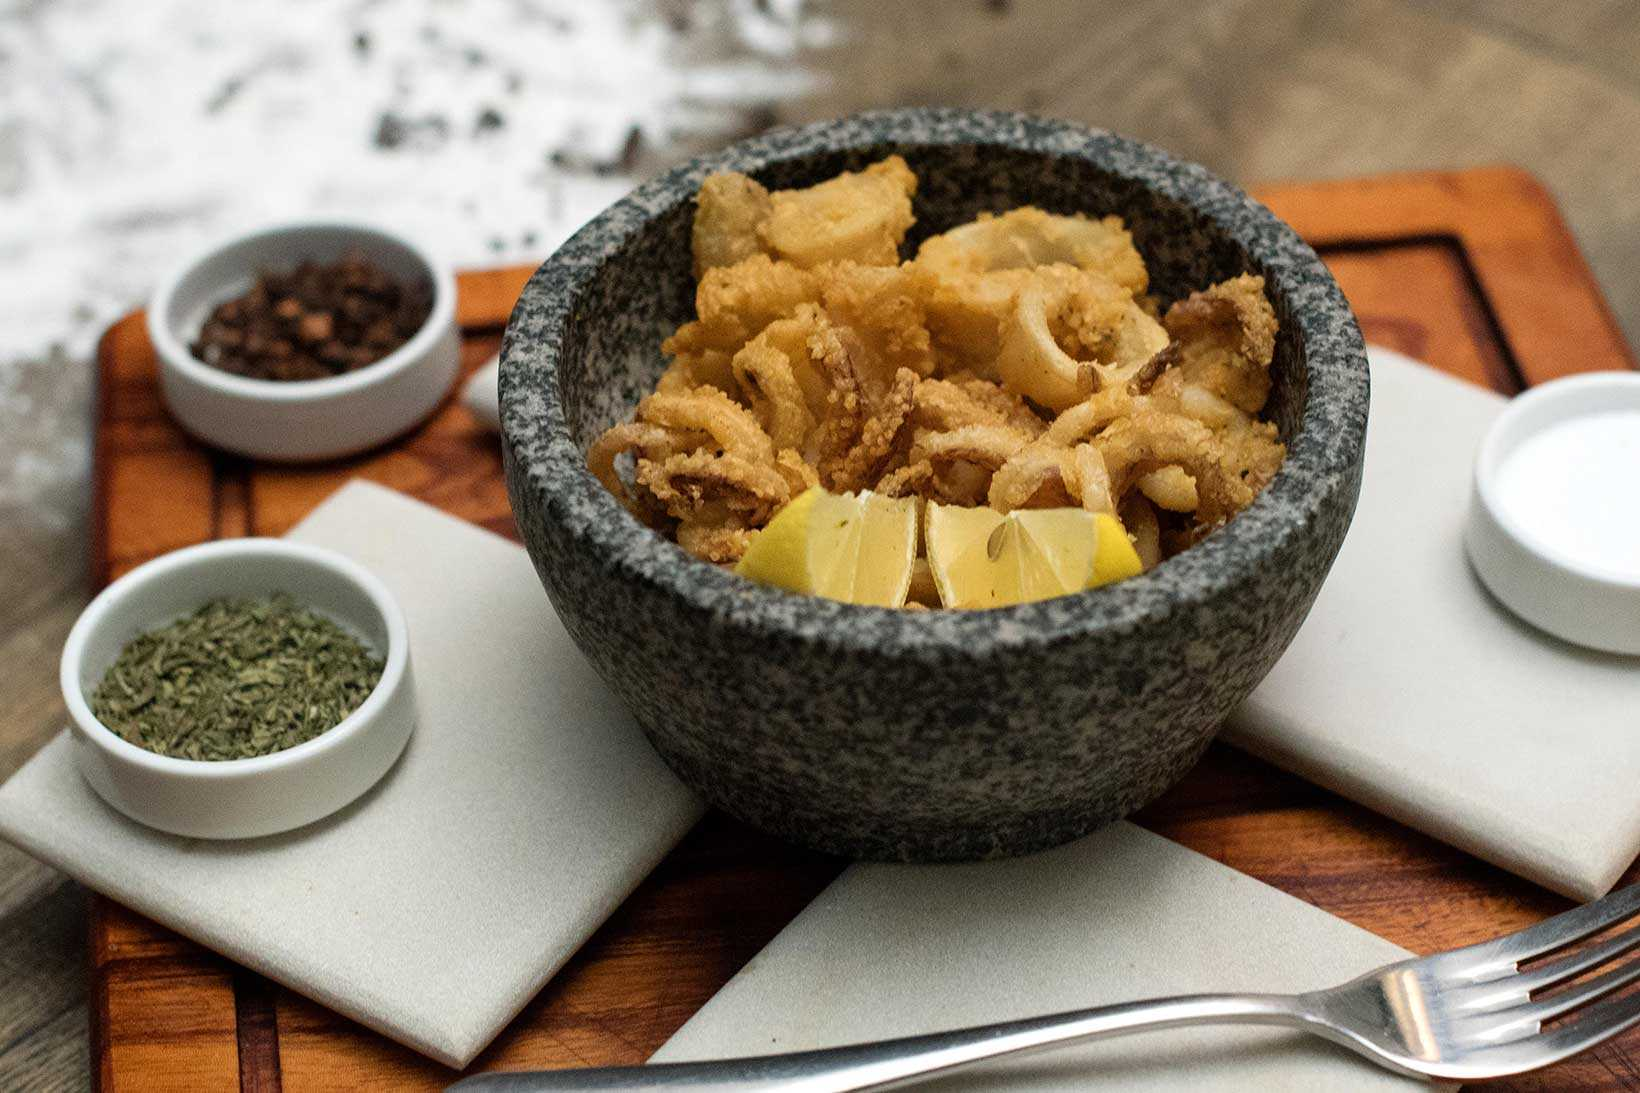 Fresh squid, battered and lightly fried served with lemon wedge.